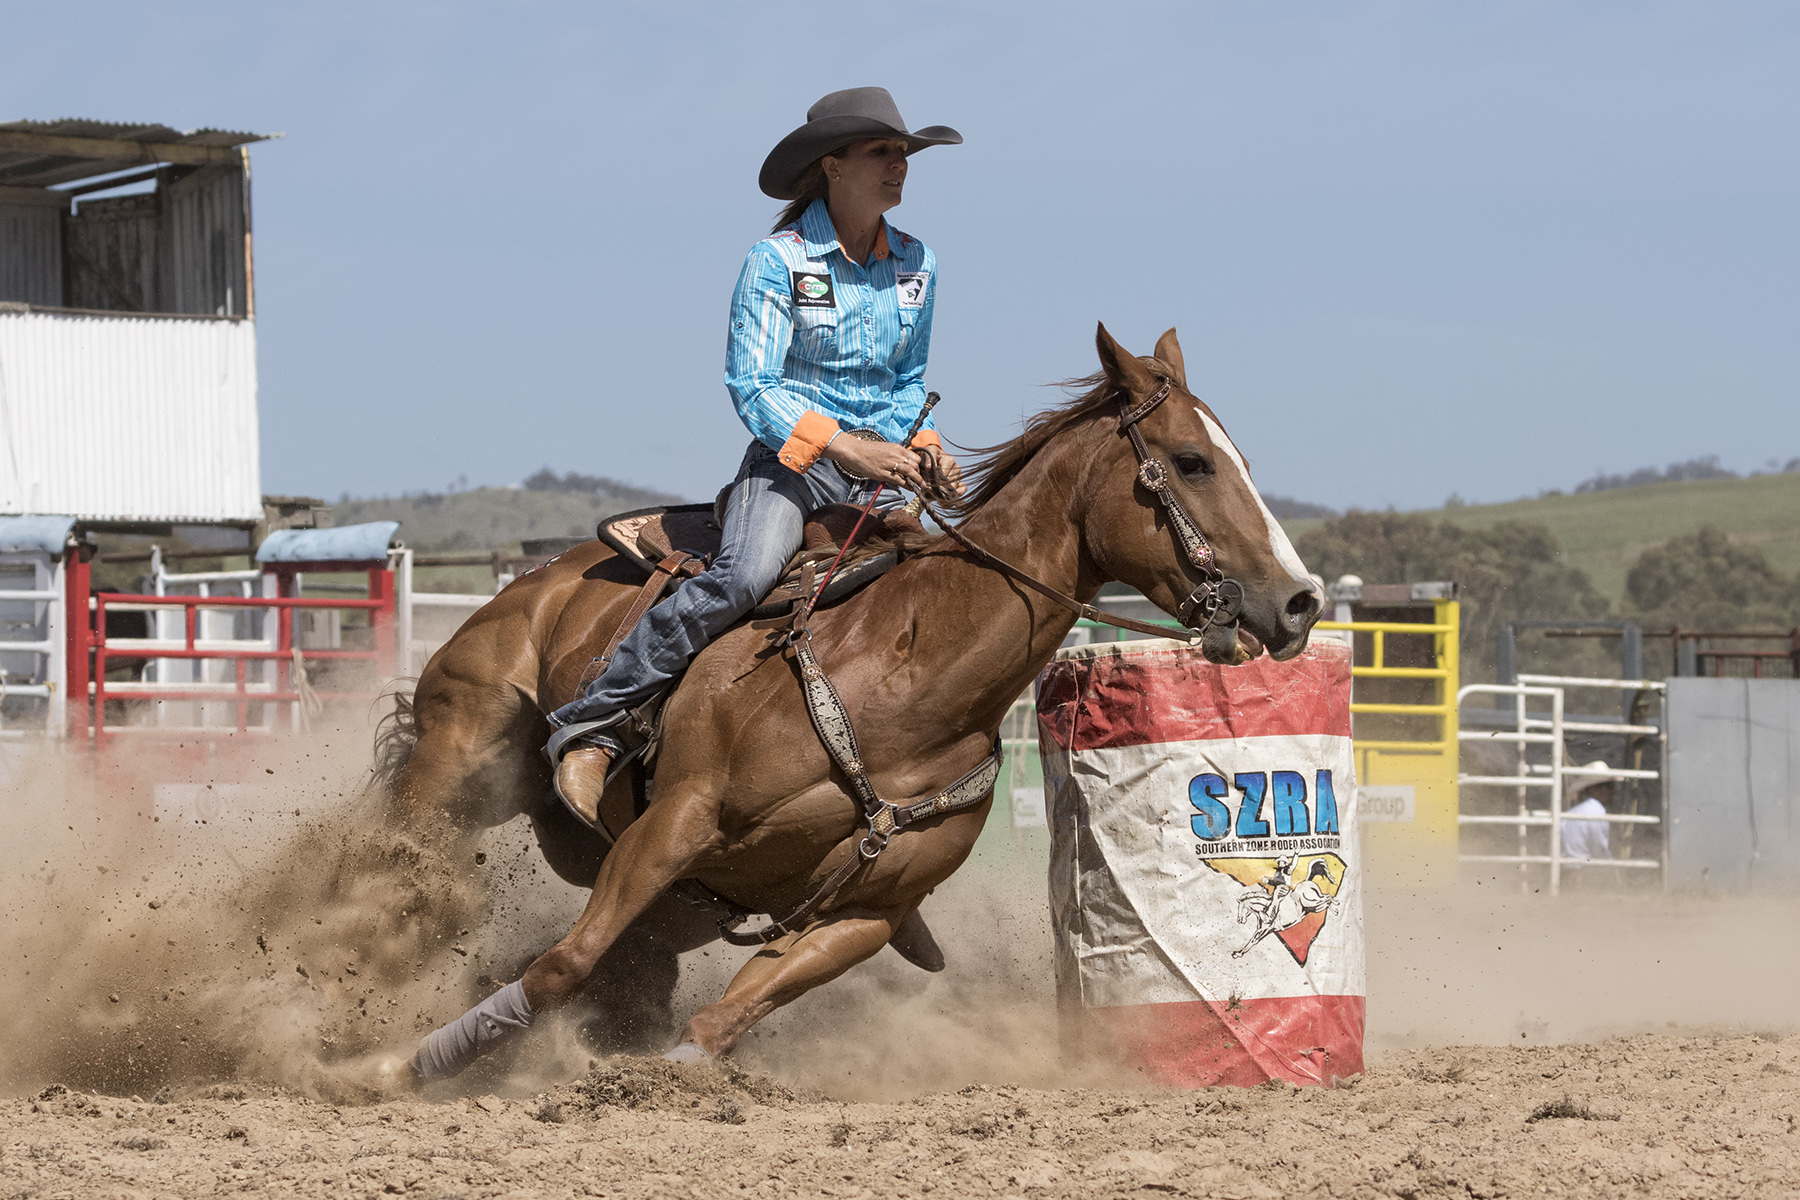 Brian_Jones_Rodeo Thrills and Spills_Barrel Race 1_1.jpg